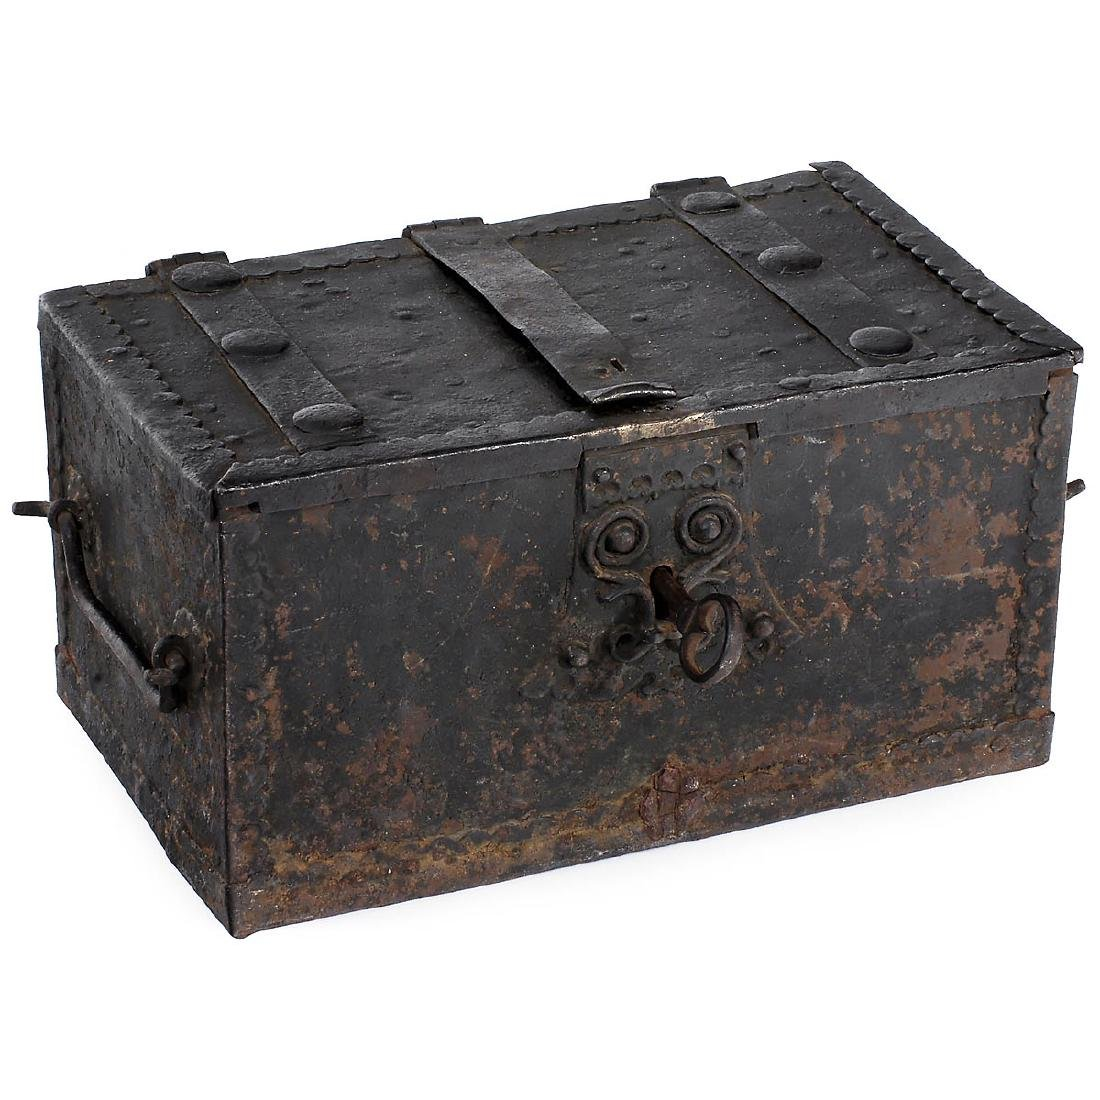 Edwardian (1901-1910) Expressive Metal Edwardian Steamer Trunk Antique Furniture